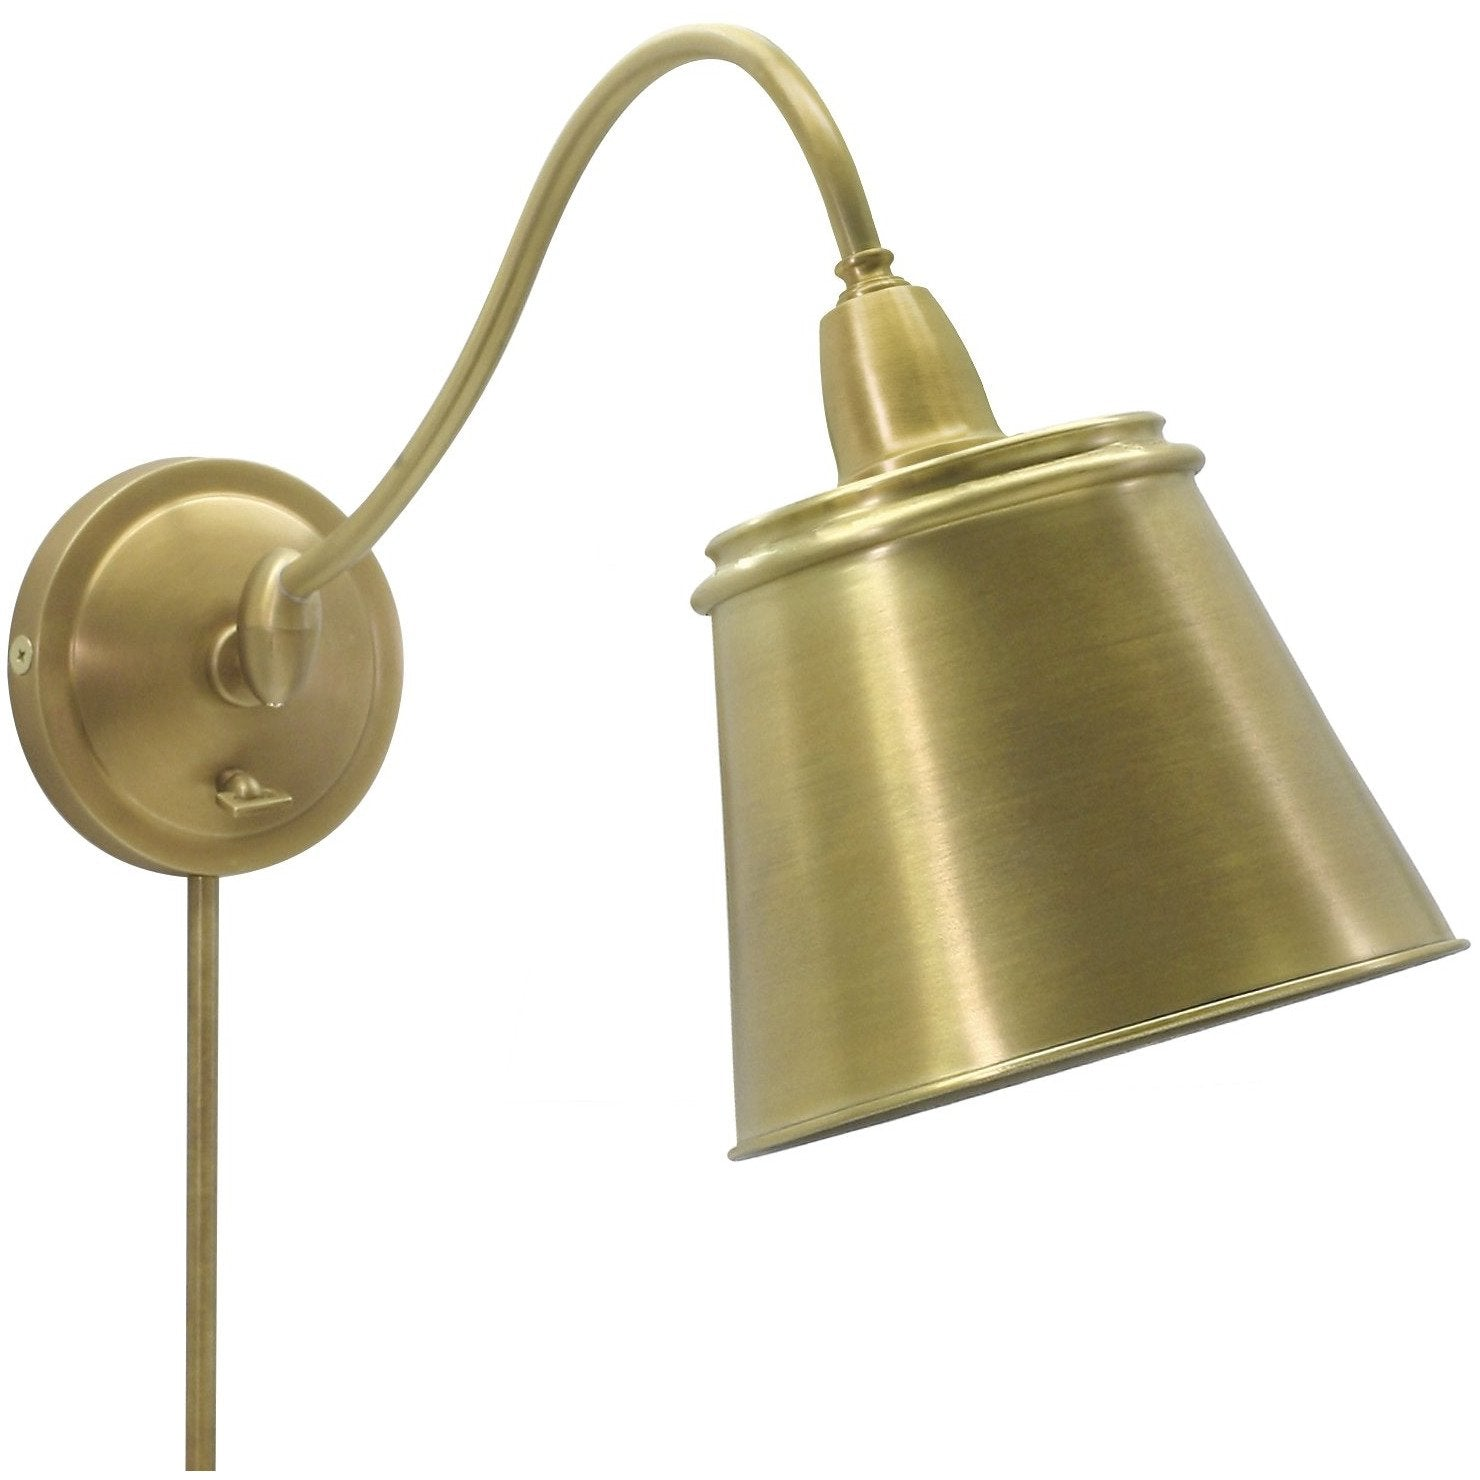 House Of Troy Wall Lamps Hyde Park Adjustable Wall Swing Arm Lamp by House Of Troy HP725-WB-MSWB